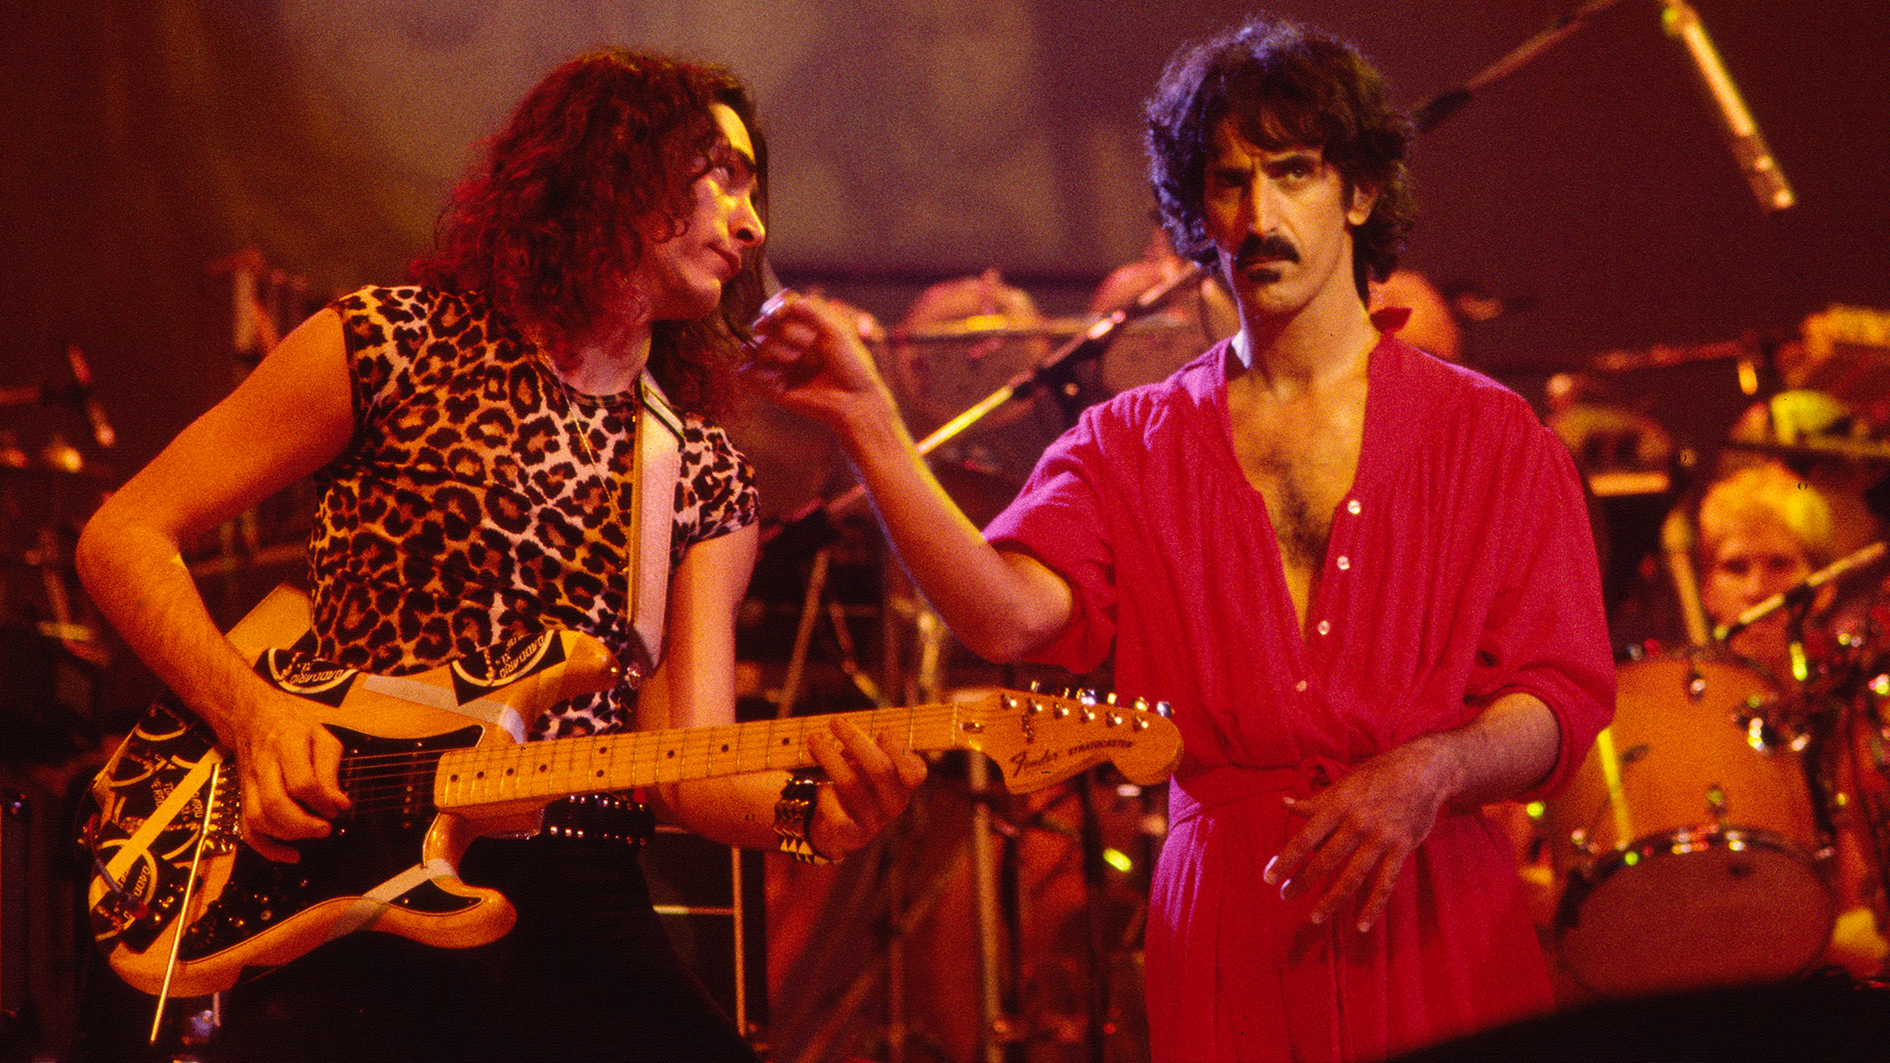 """Frank Zappa once told Steve Vai his guitar tone sounded """"like an electric ham sandwich"""""""